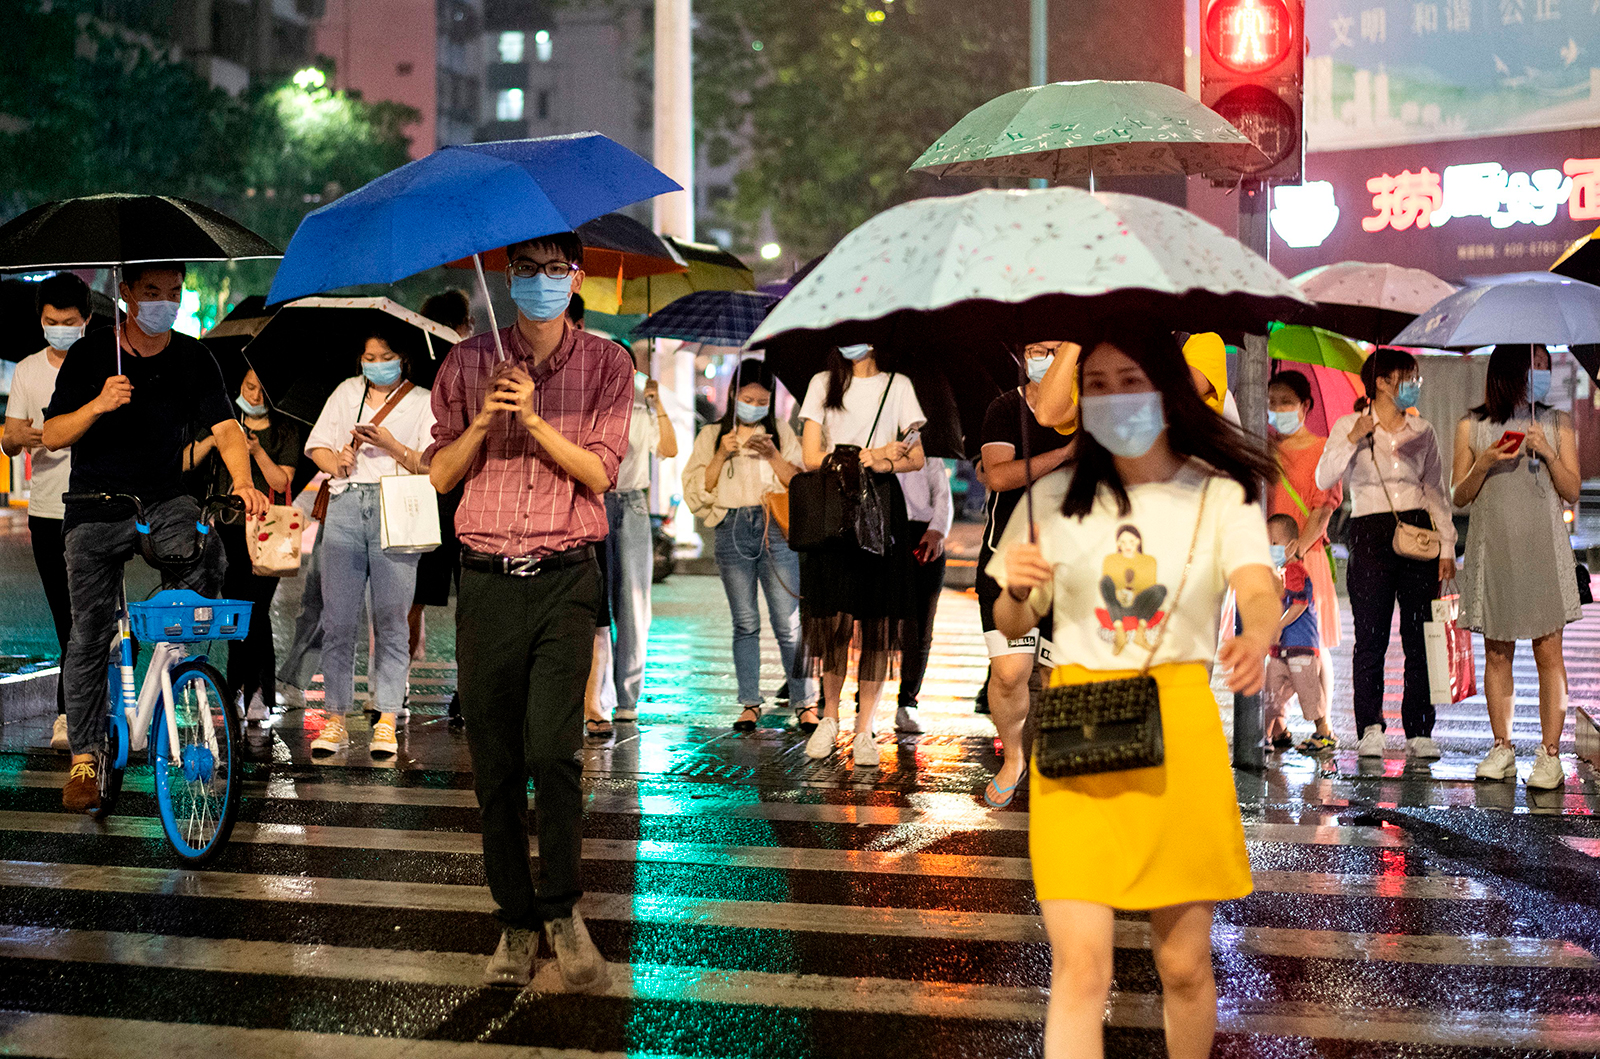 People wearing protective face masks walk in Shenzhen, China on May 22.